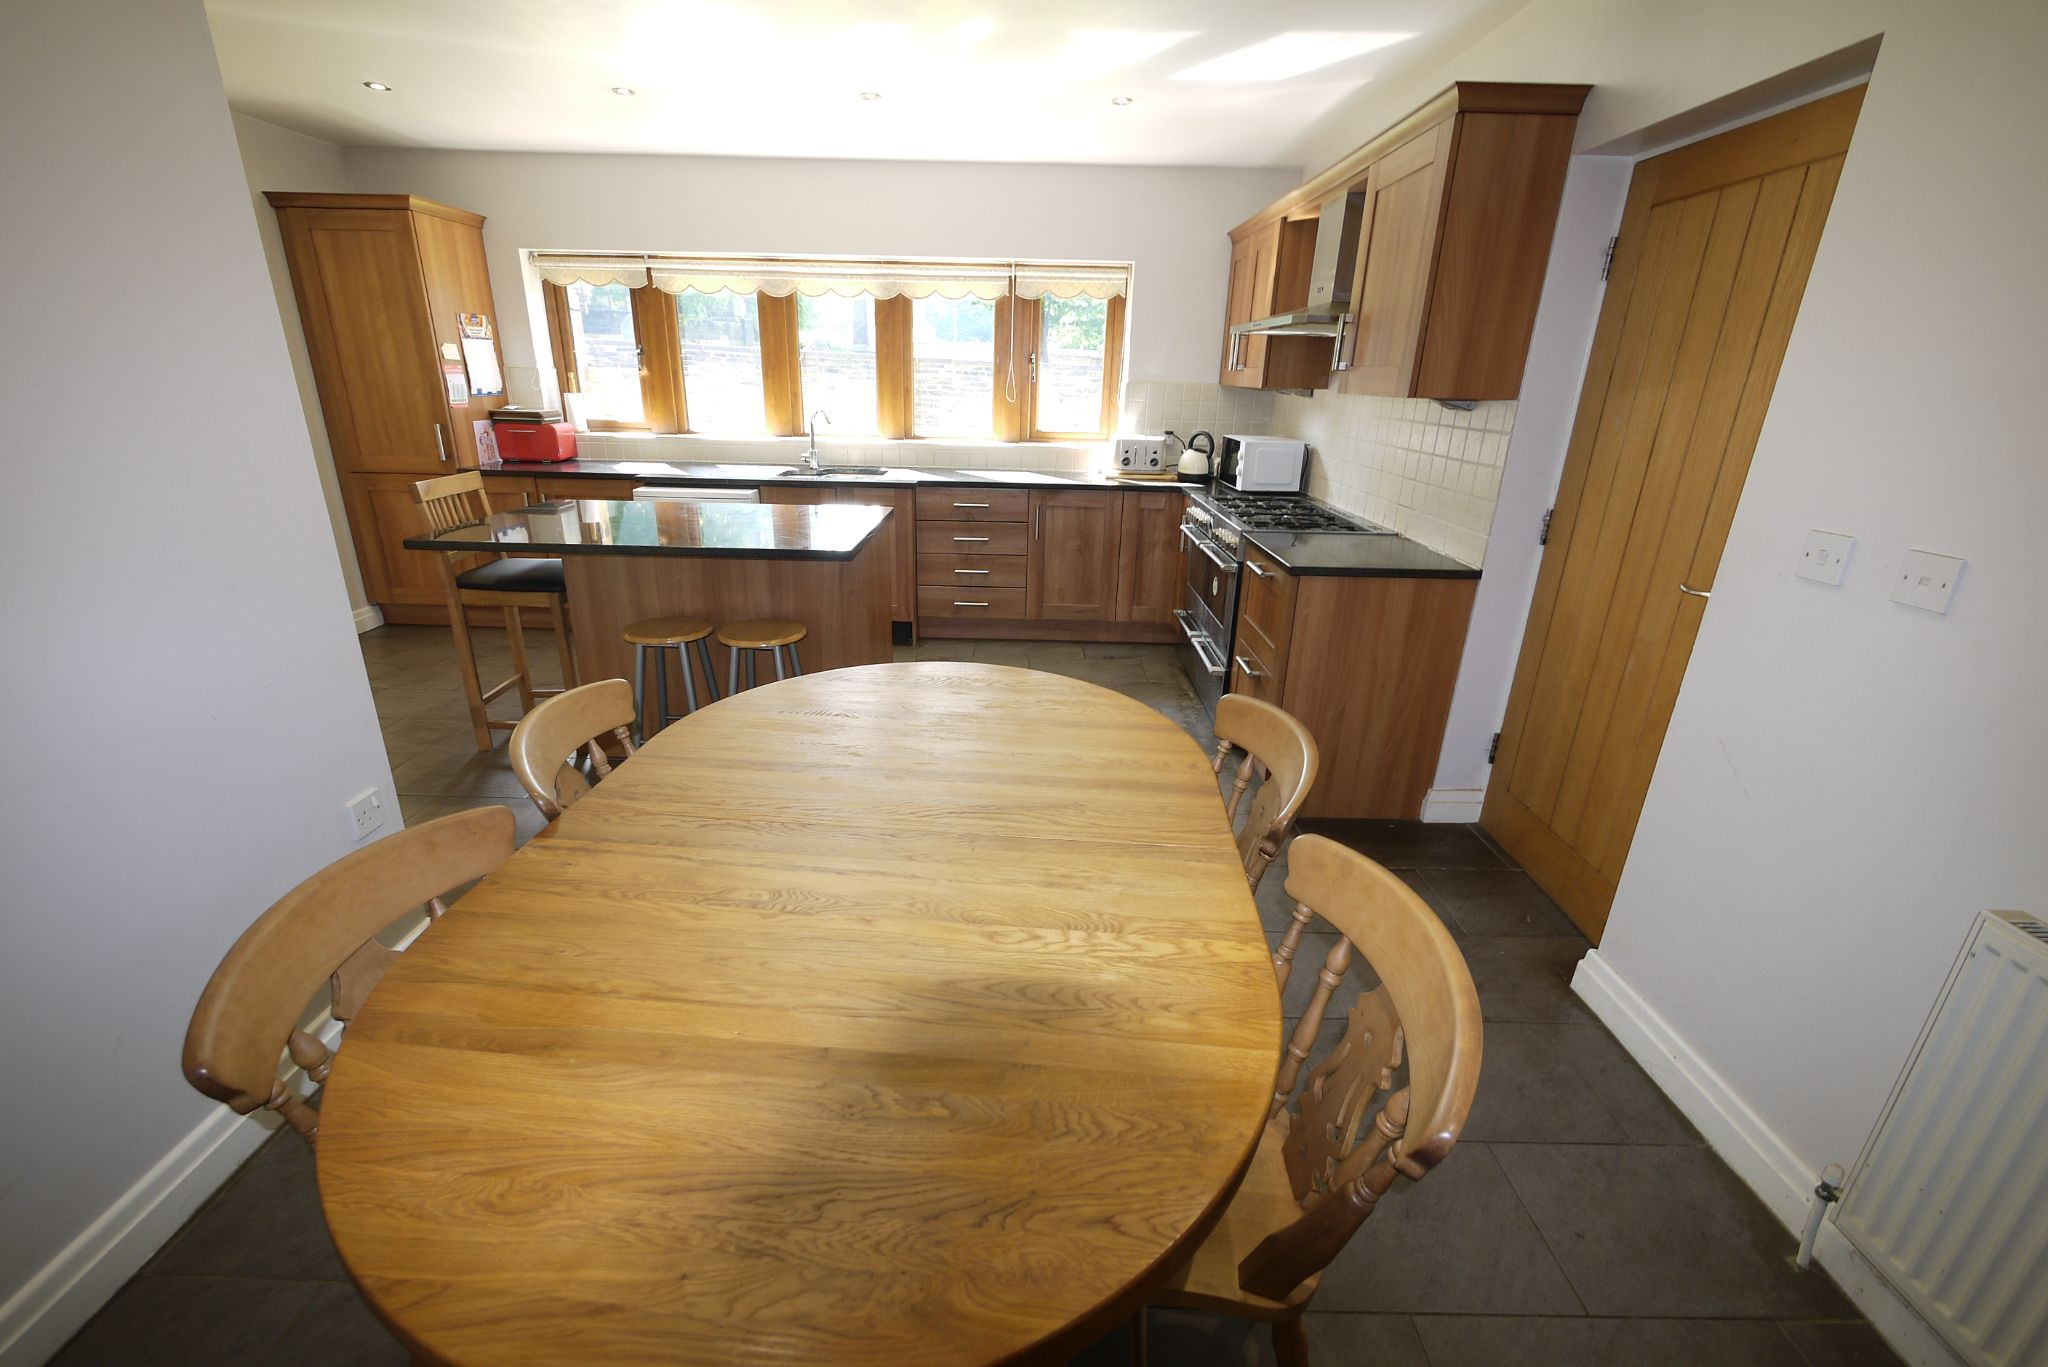 5 bedroom detached house For Sale in Brighouse - Photograph 4.